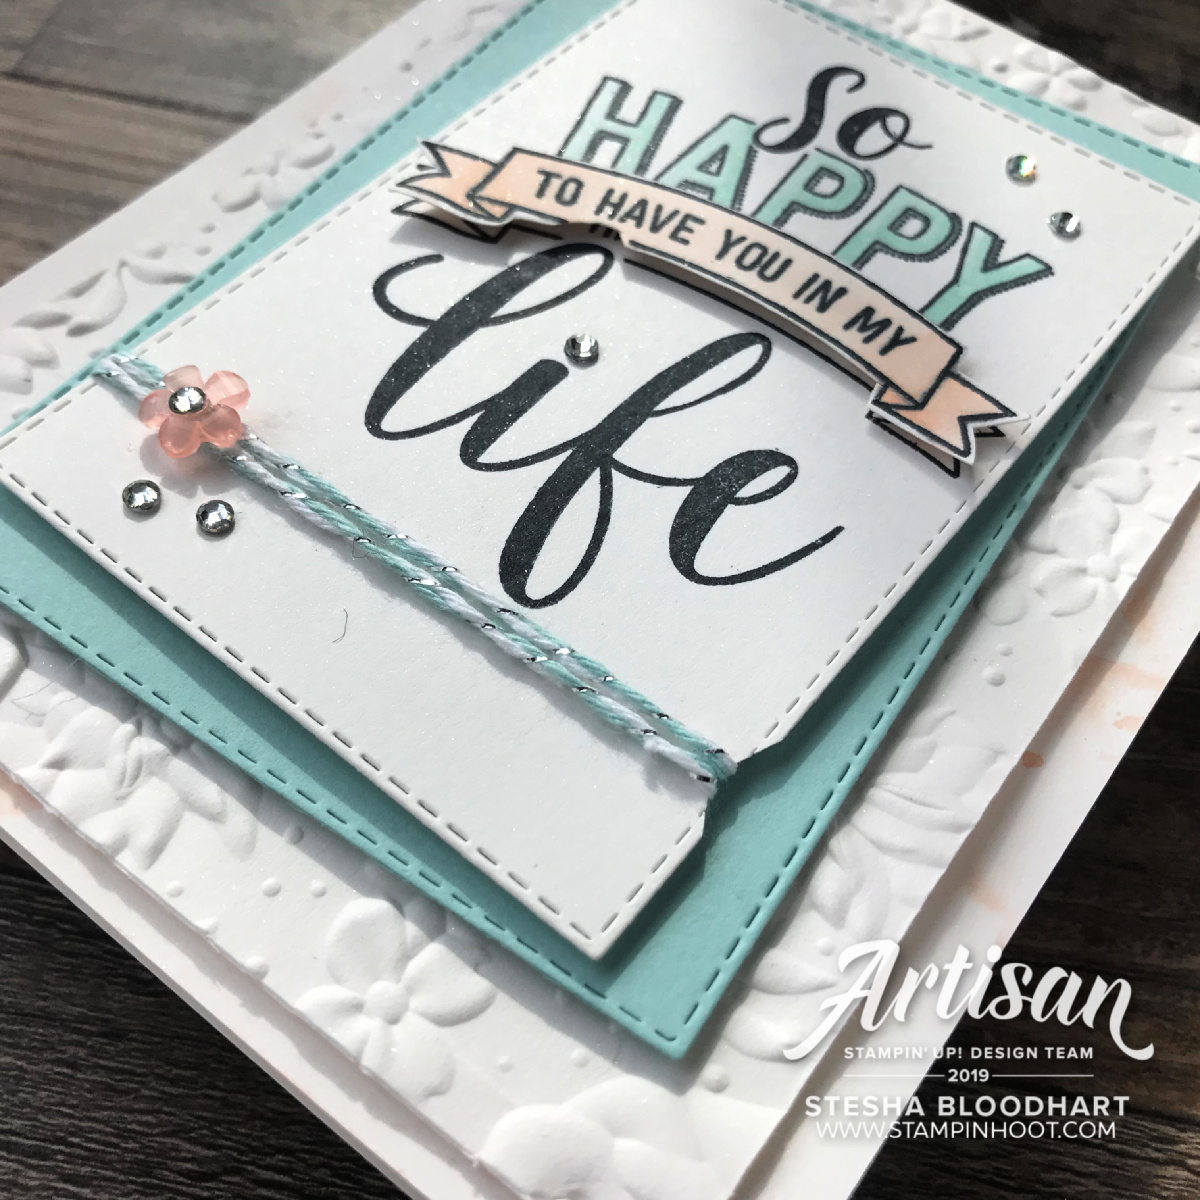 Amazing Life Bundle by Stampin' Up! Rectangle Stitched Framelits Dies Stesha Bloodhart, Stampin' Up!